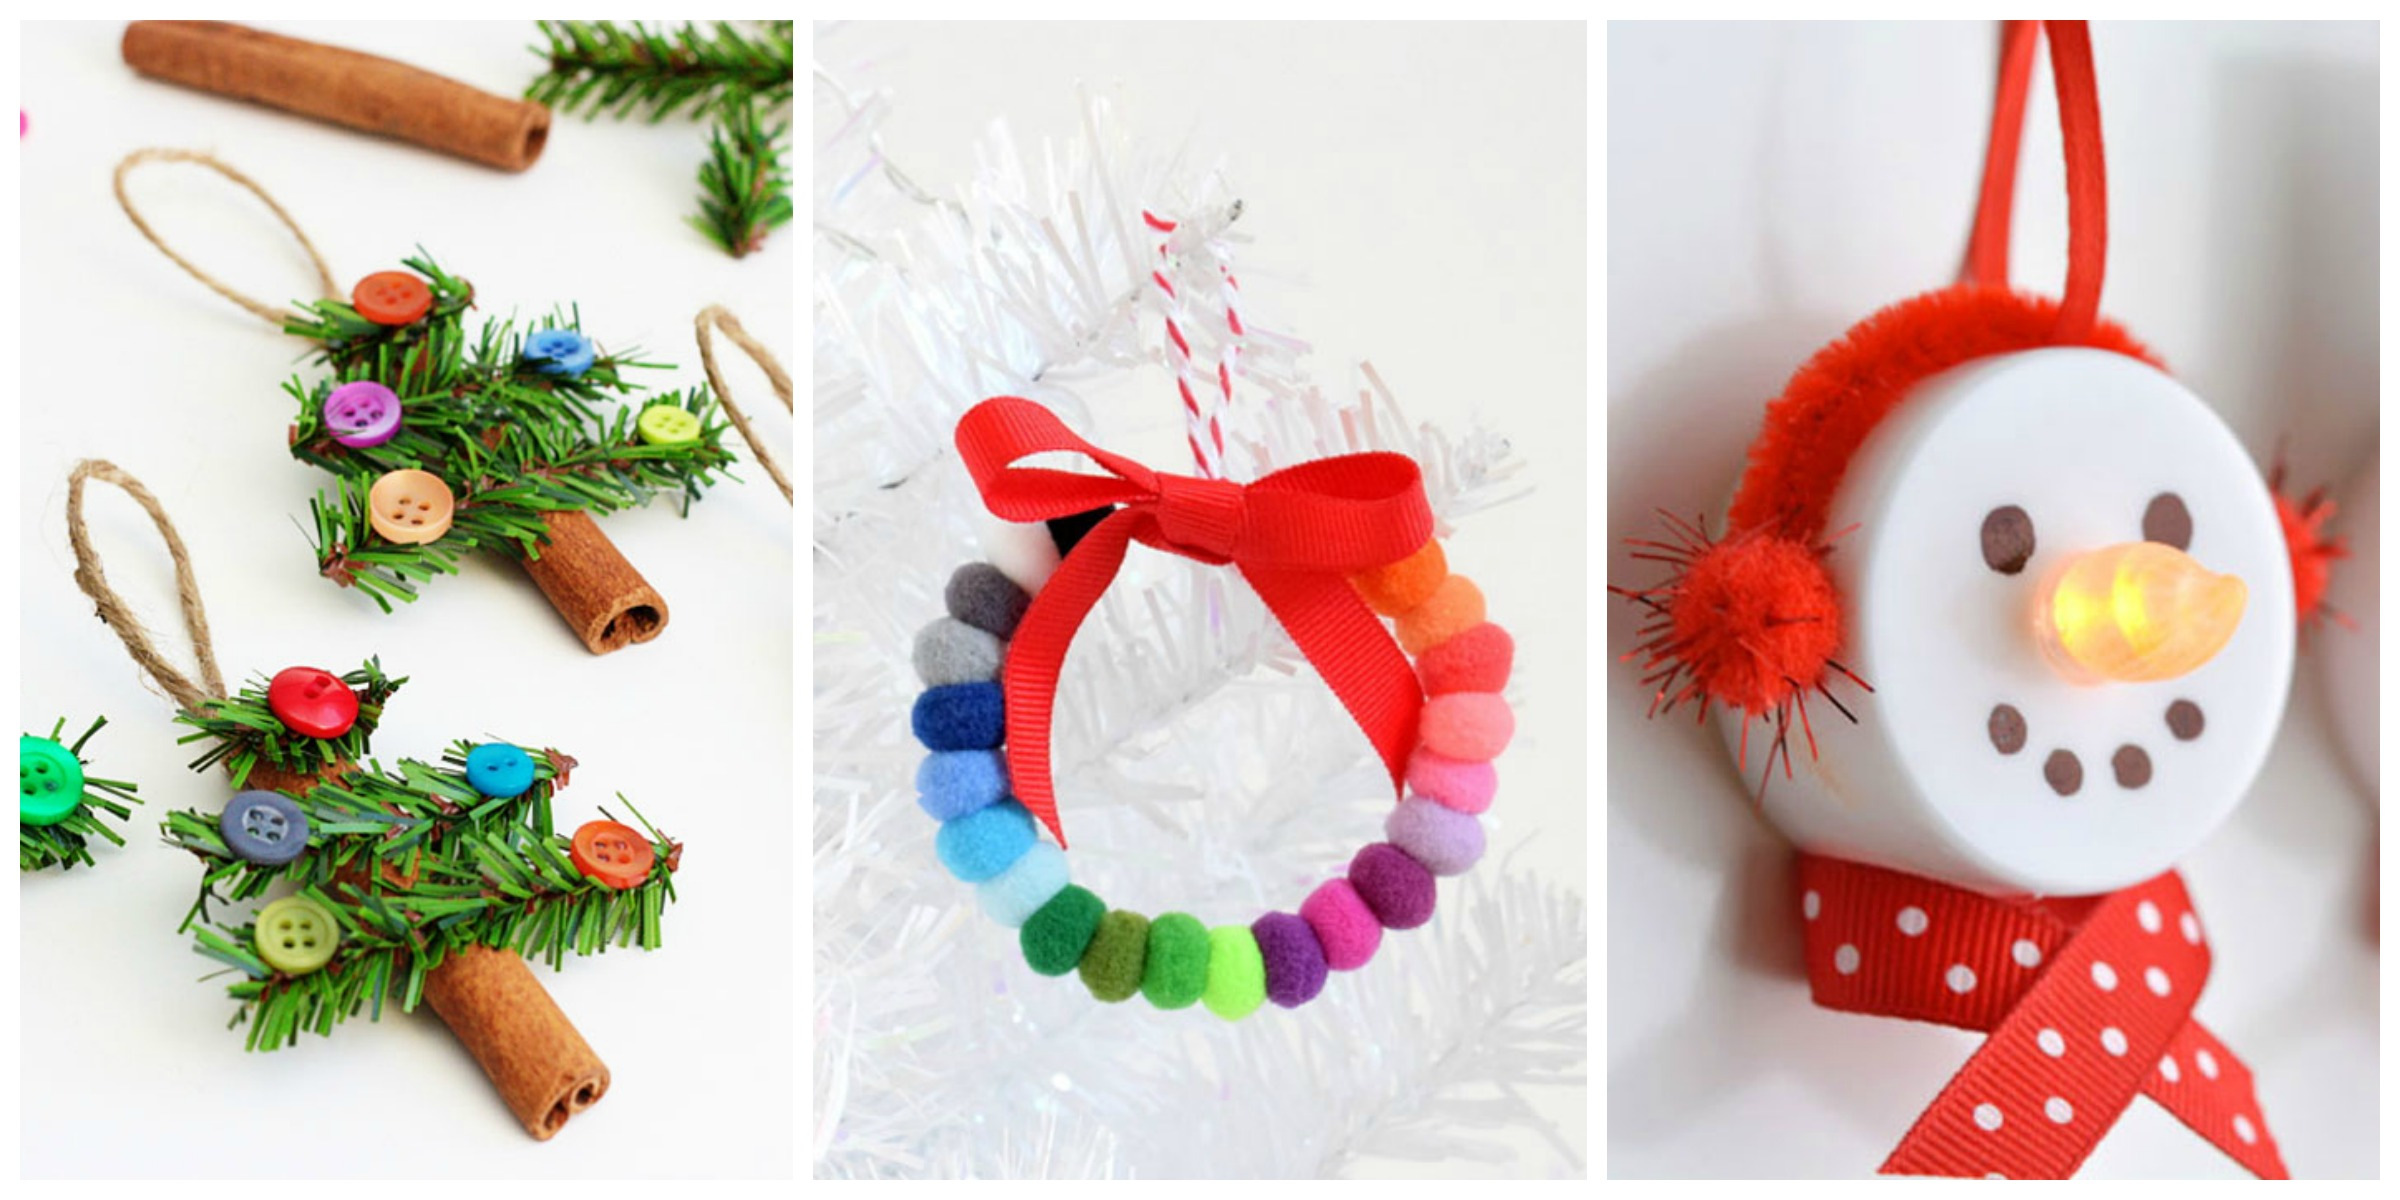 56 Unique DIY Christmas Ornaments - Easy Homemade Ornament ...